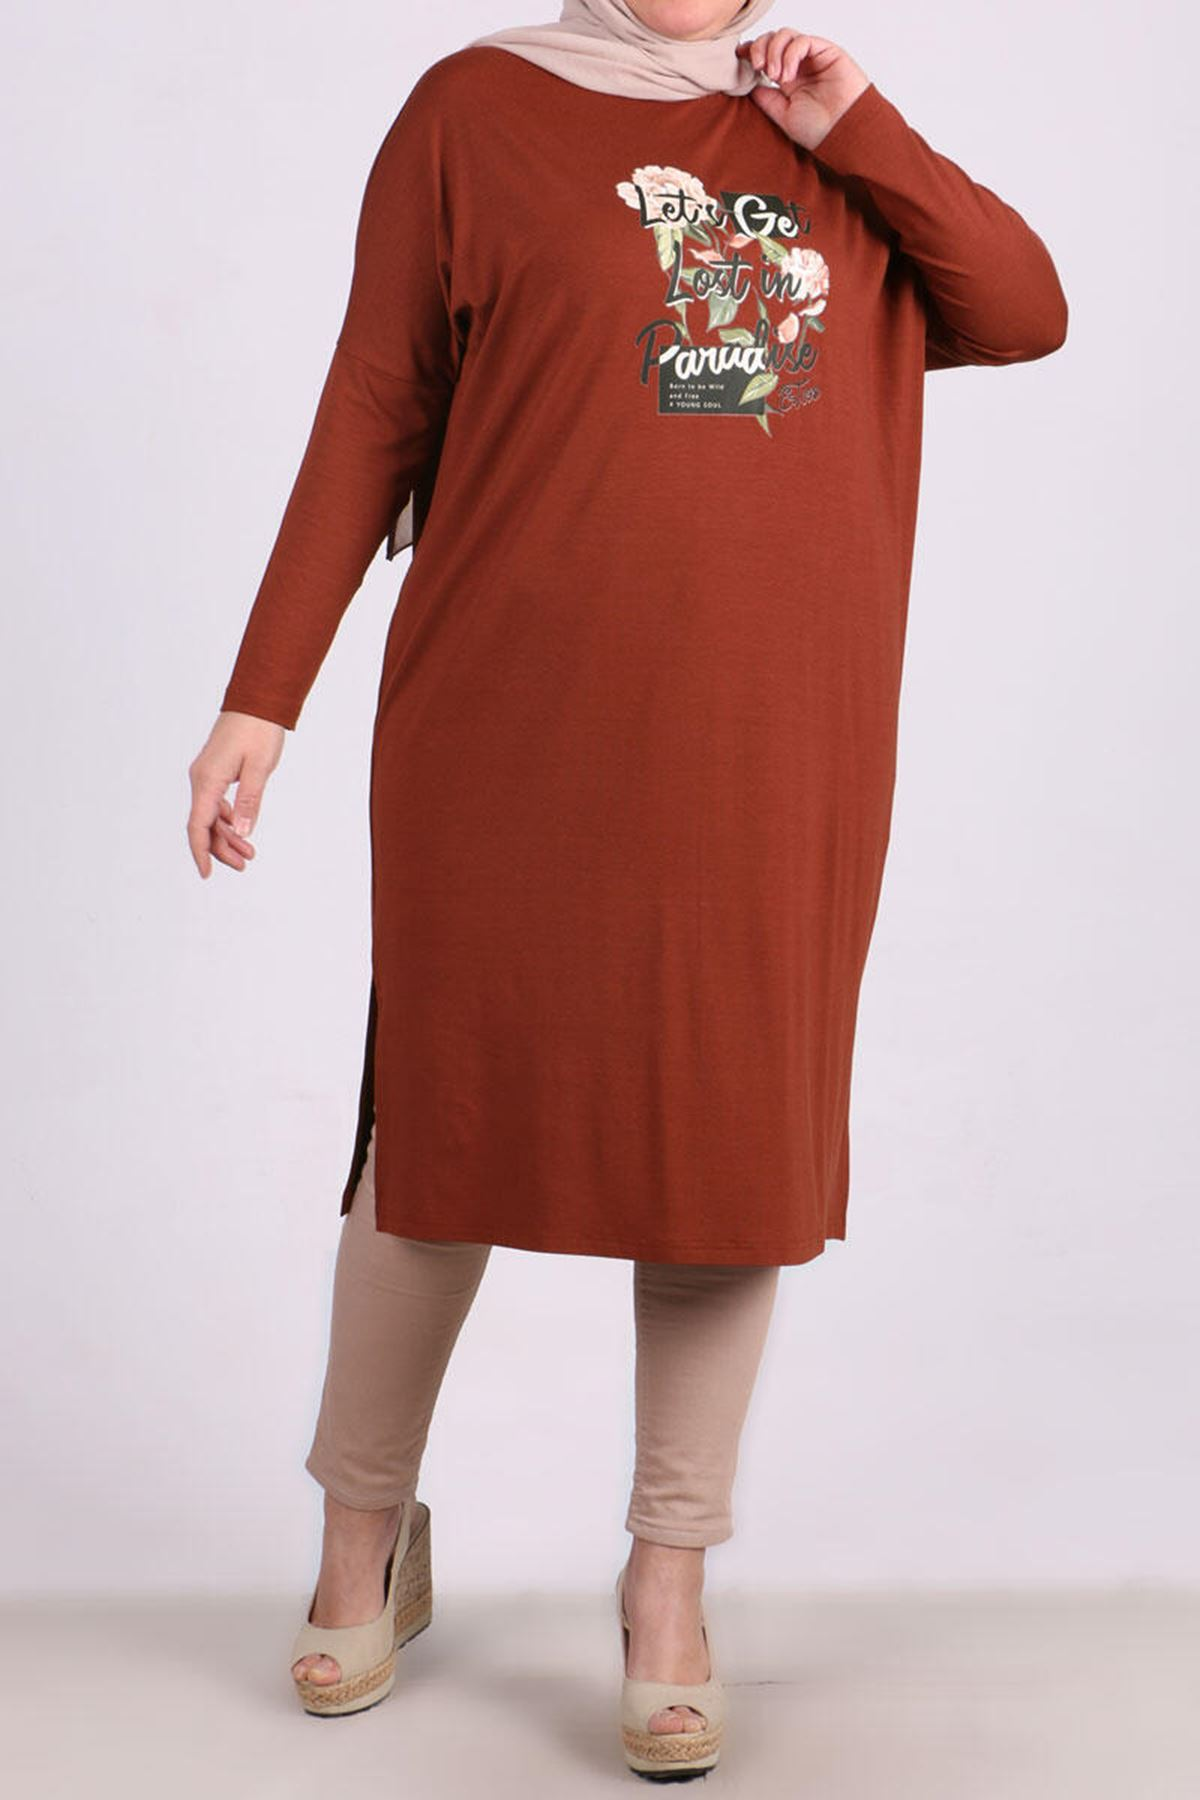 Plus Size Tunic with Low Sleeve - Terra Cotta